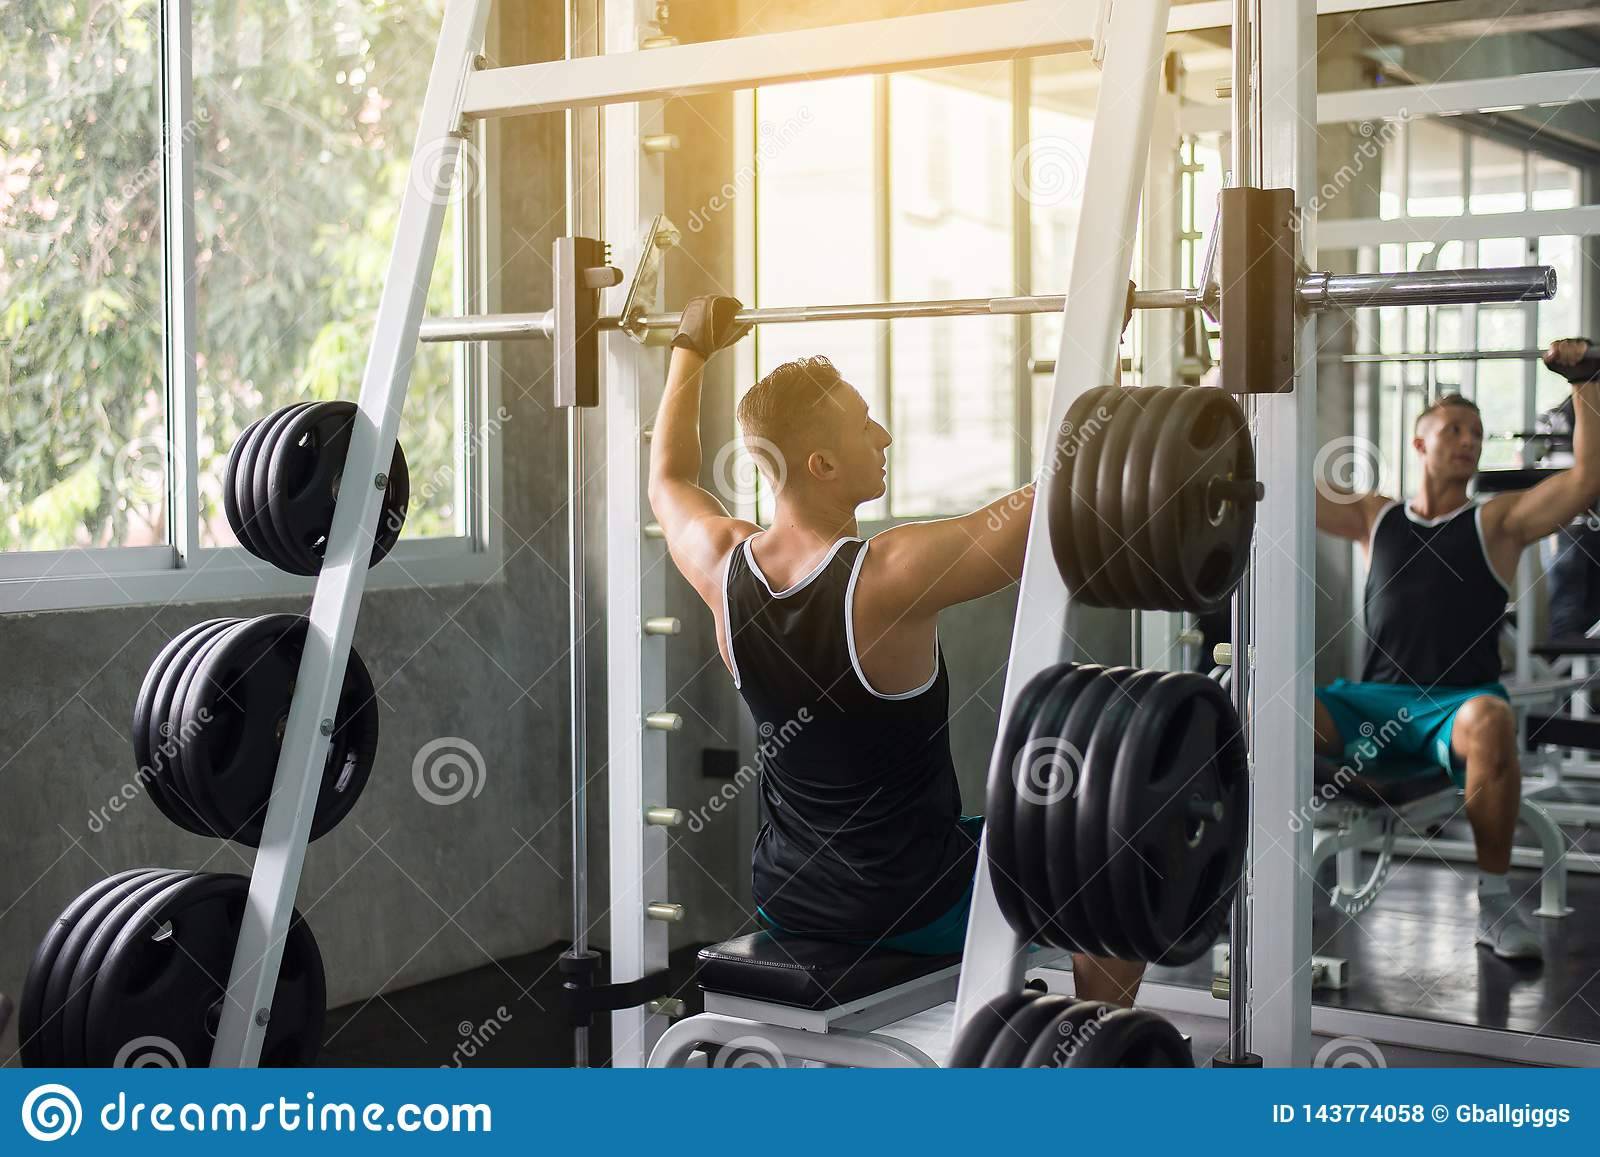 Cross fit body and muscular lifting weight barbell in the gym,Sport man doing exercises training